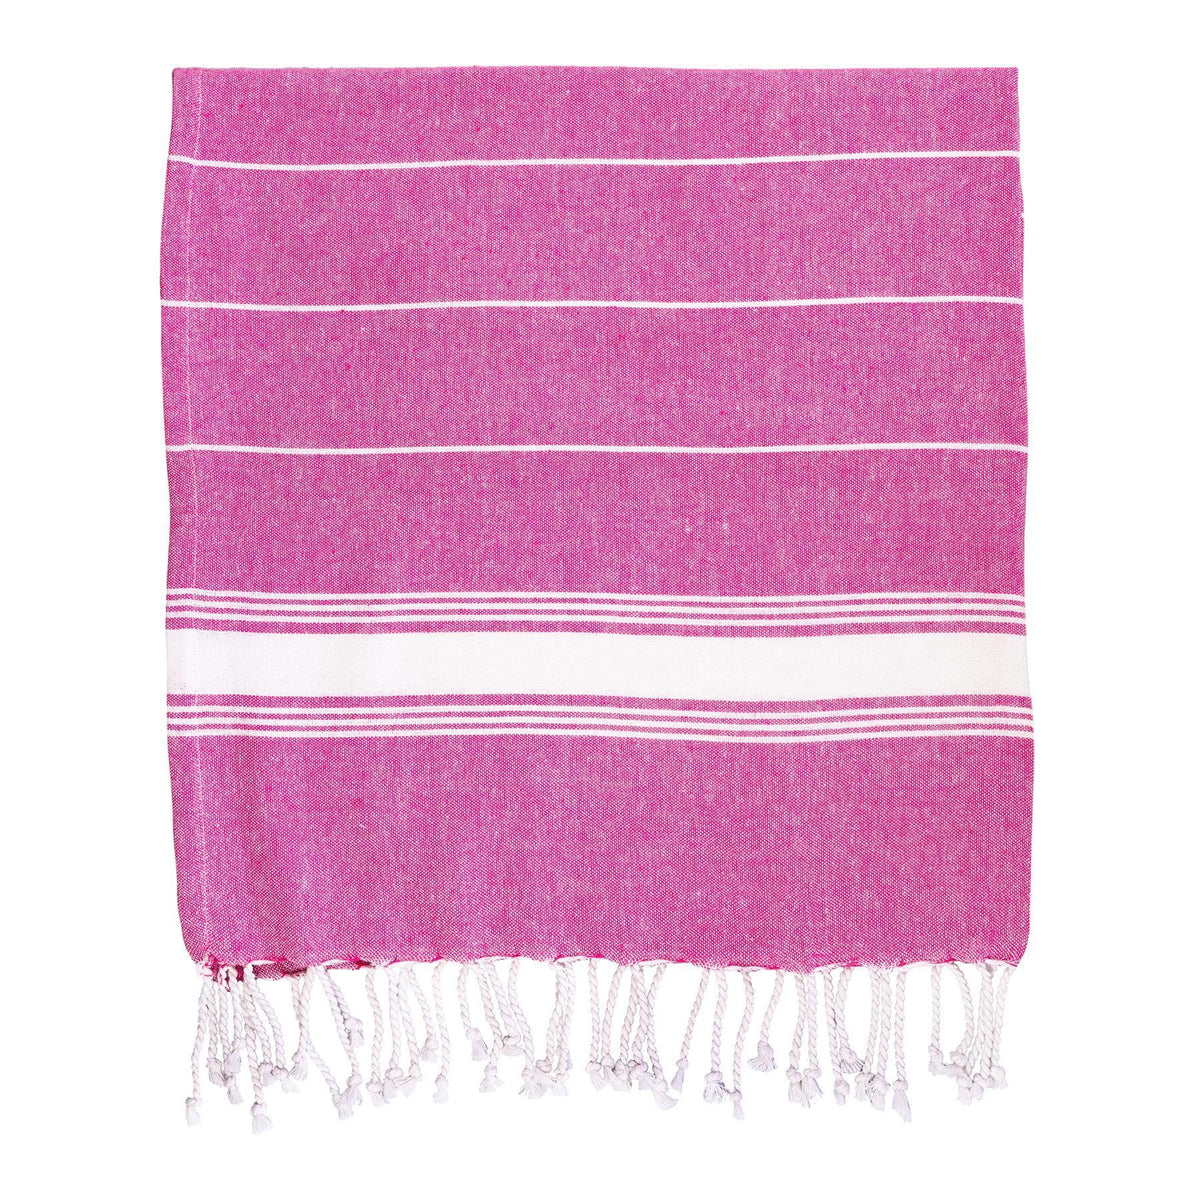 Nicola Spring Turkish Beach Towel - Pink